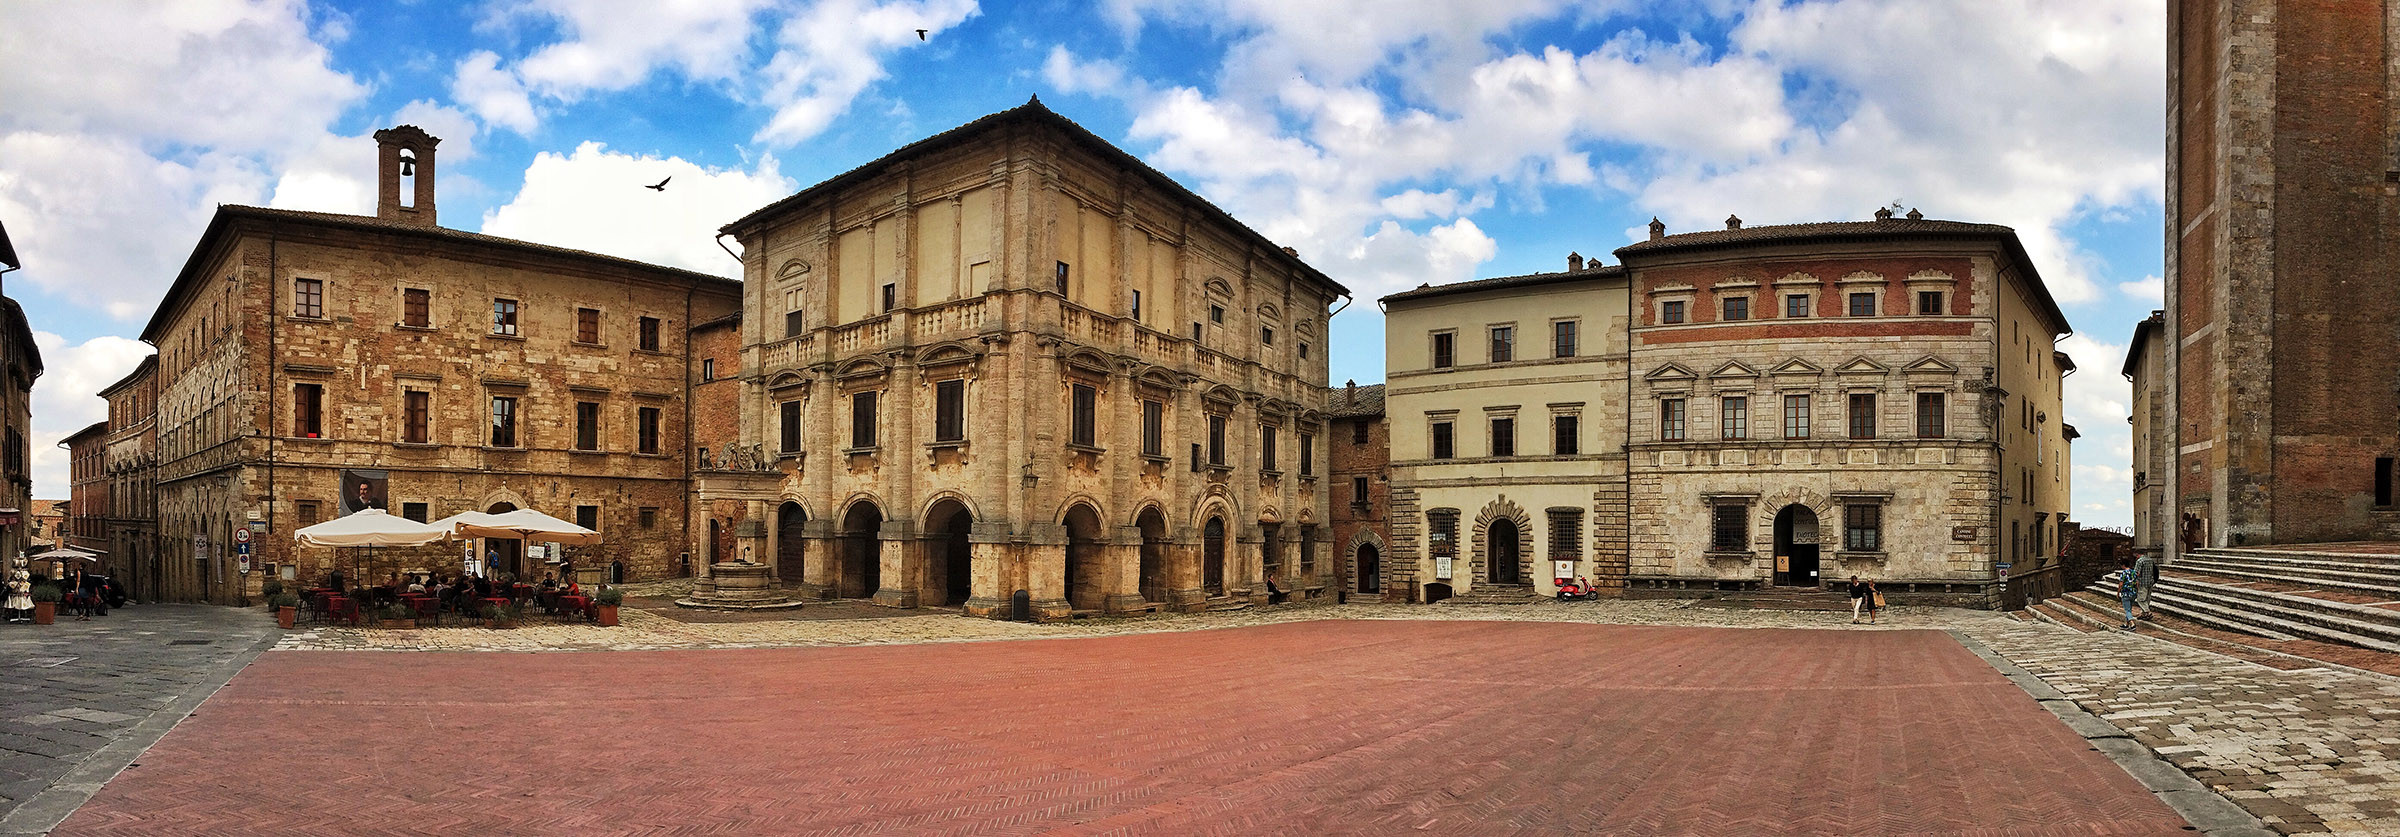 One of the main piazzas inside Montepulciano.